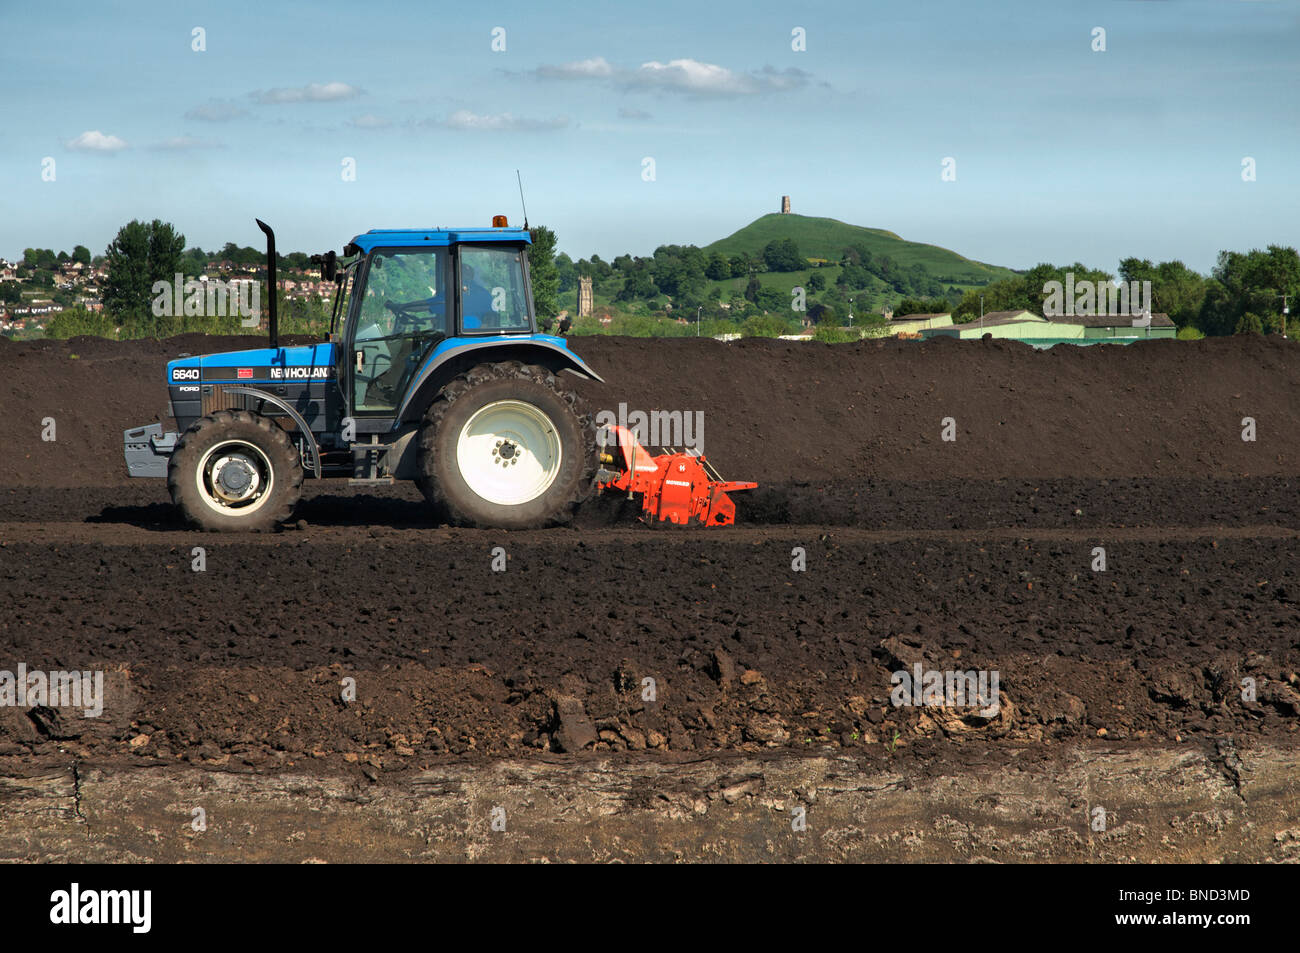 Peat cutting operation taking place on the Somerset levels near Glastonbury with Glastonbury tor in the Background - Stock Image